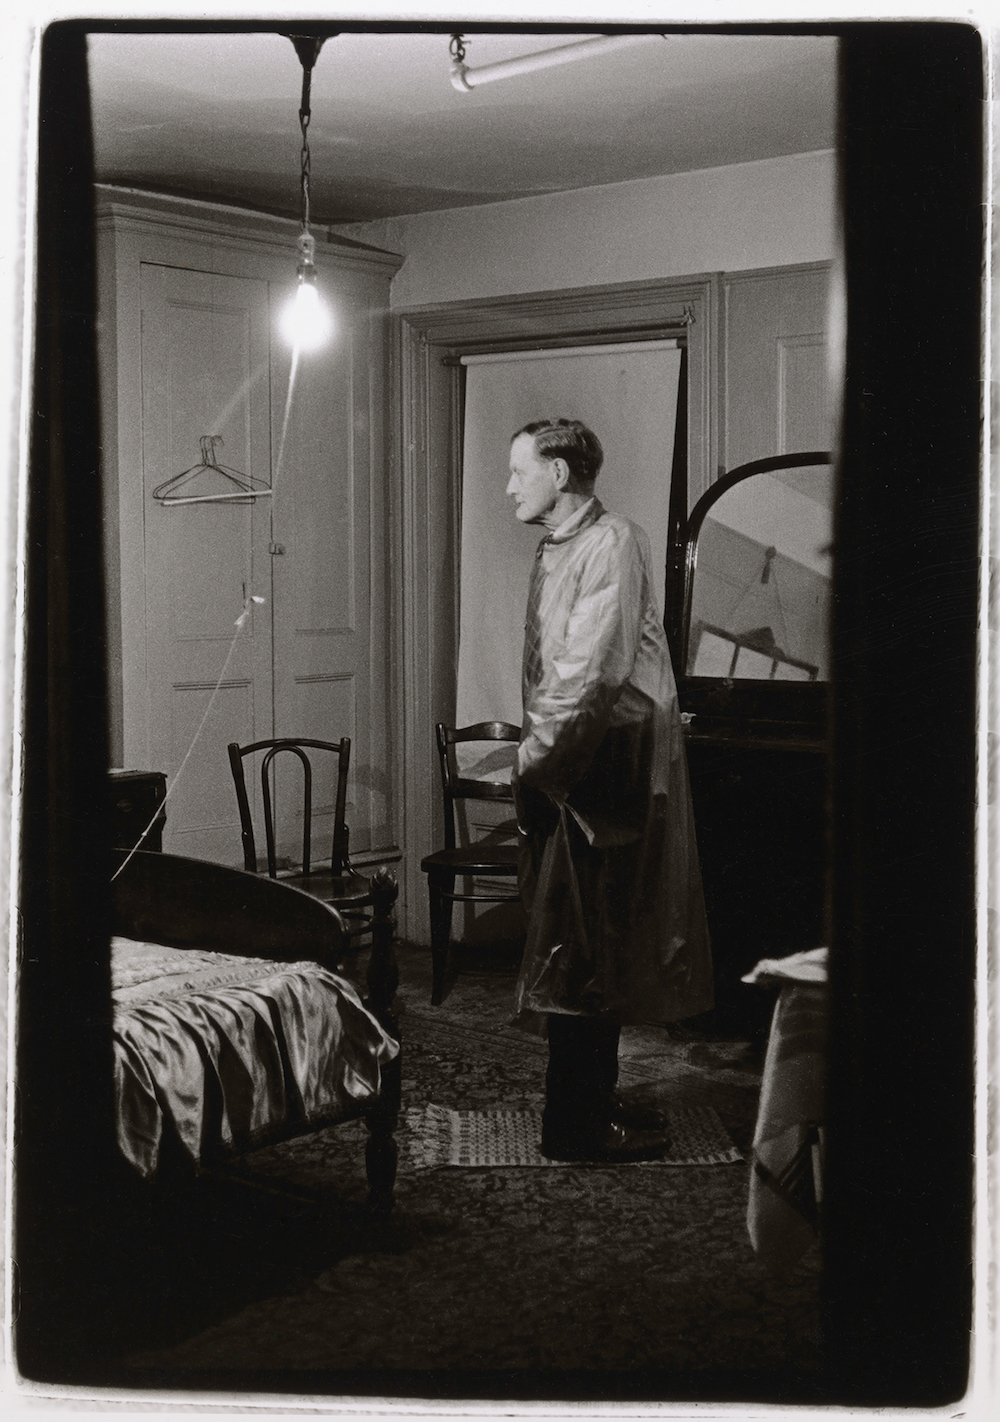 Hotel Room Photography: Previously Unpublished Diane Arbus Photos